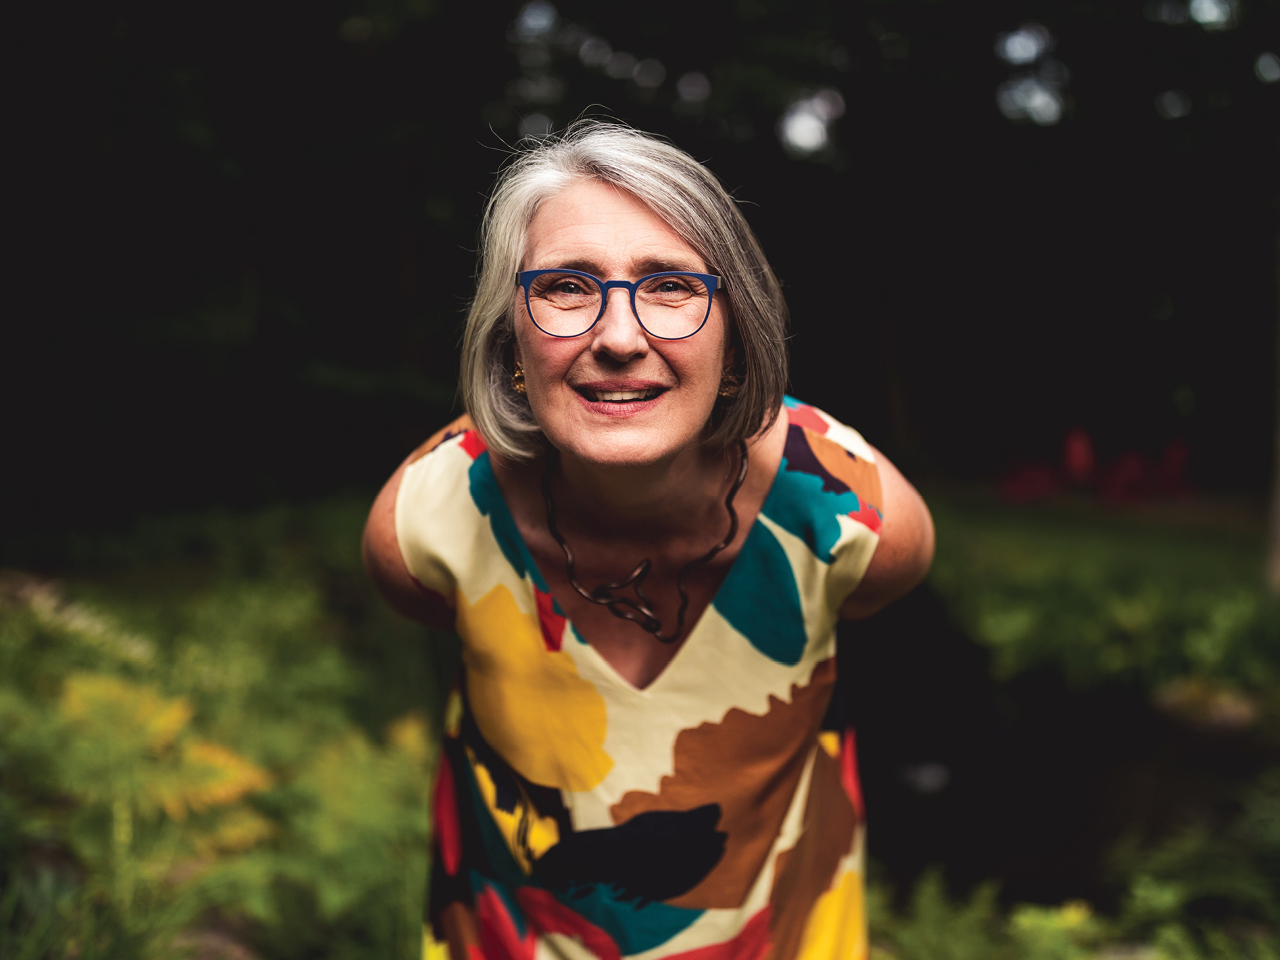 A portrait of crime writer Louise Penny leaning into the camera